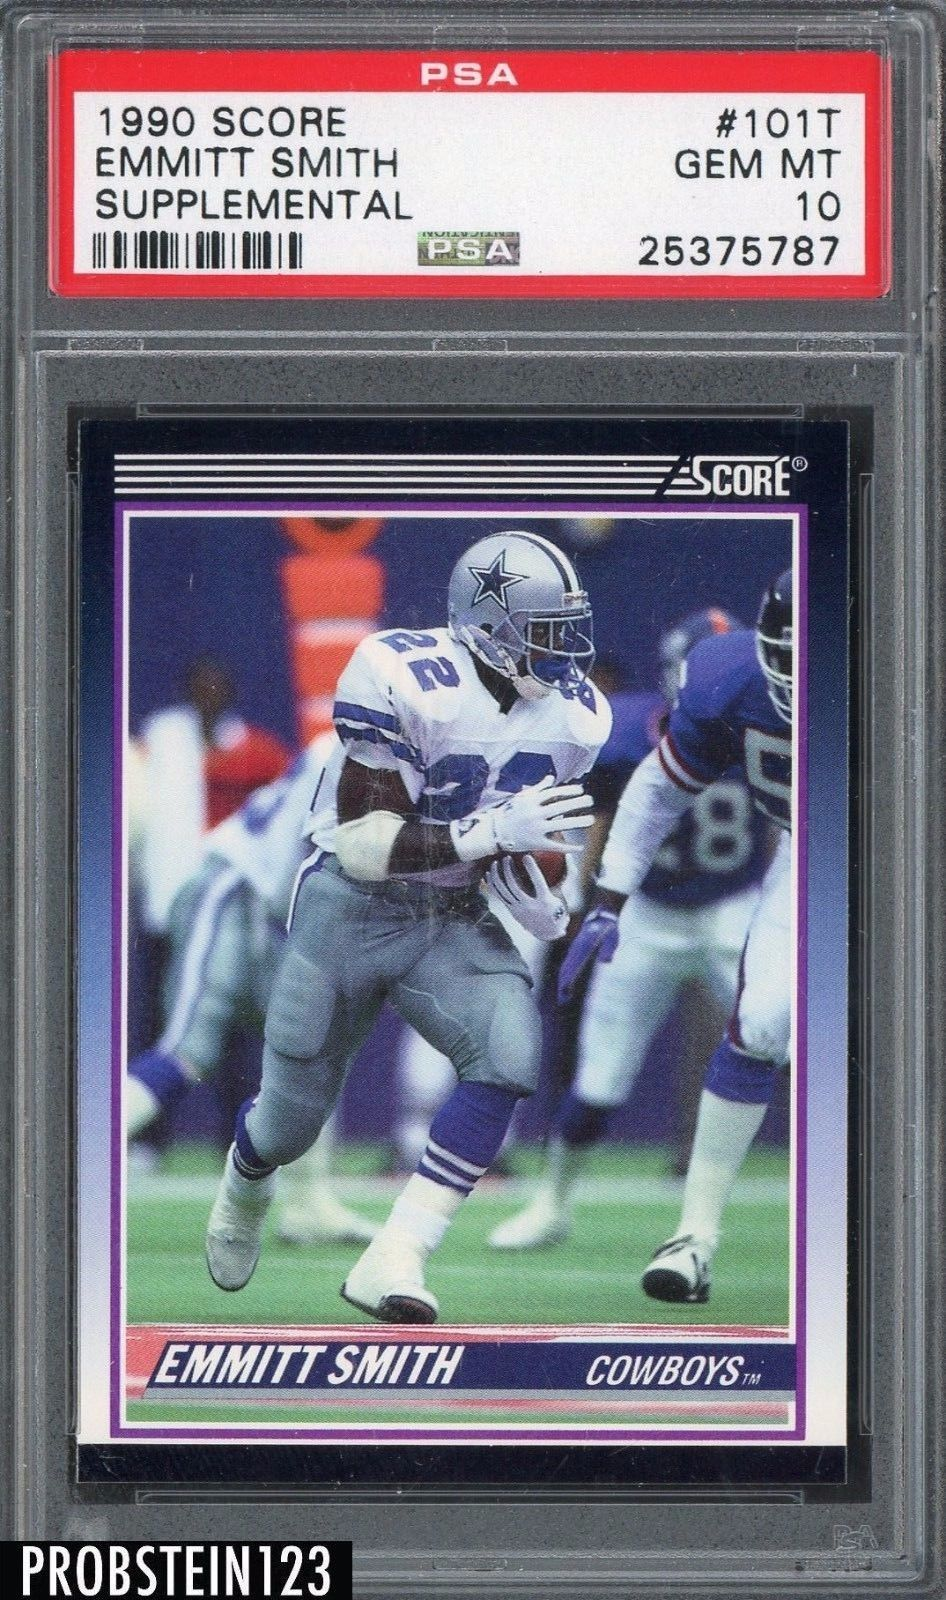 Sportsmemorbilia 1990 Score Supplemental 101t Emmitt Smith Cowboys Rc Rookie Hof Psa 10 Collectibles Football Cards Football Trading Cards Cowboys